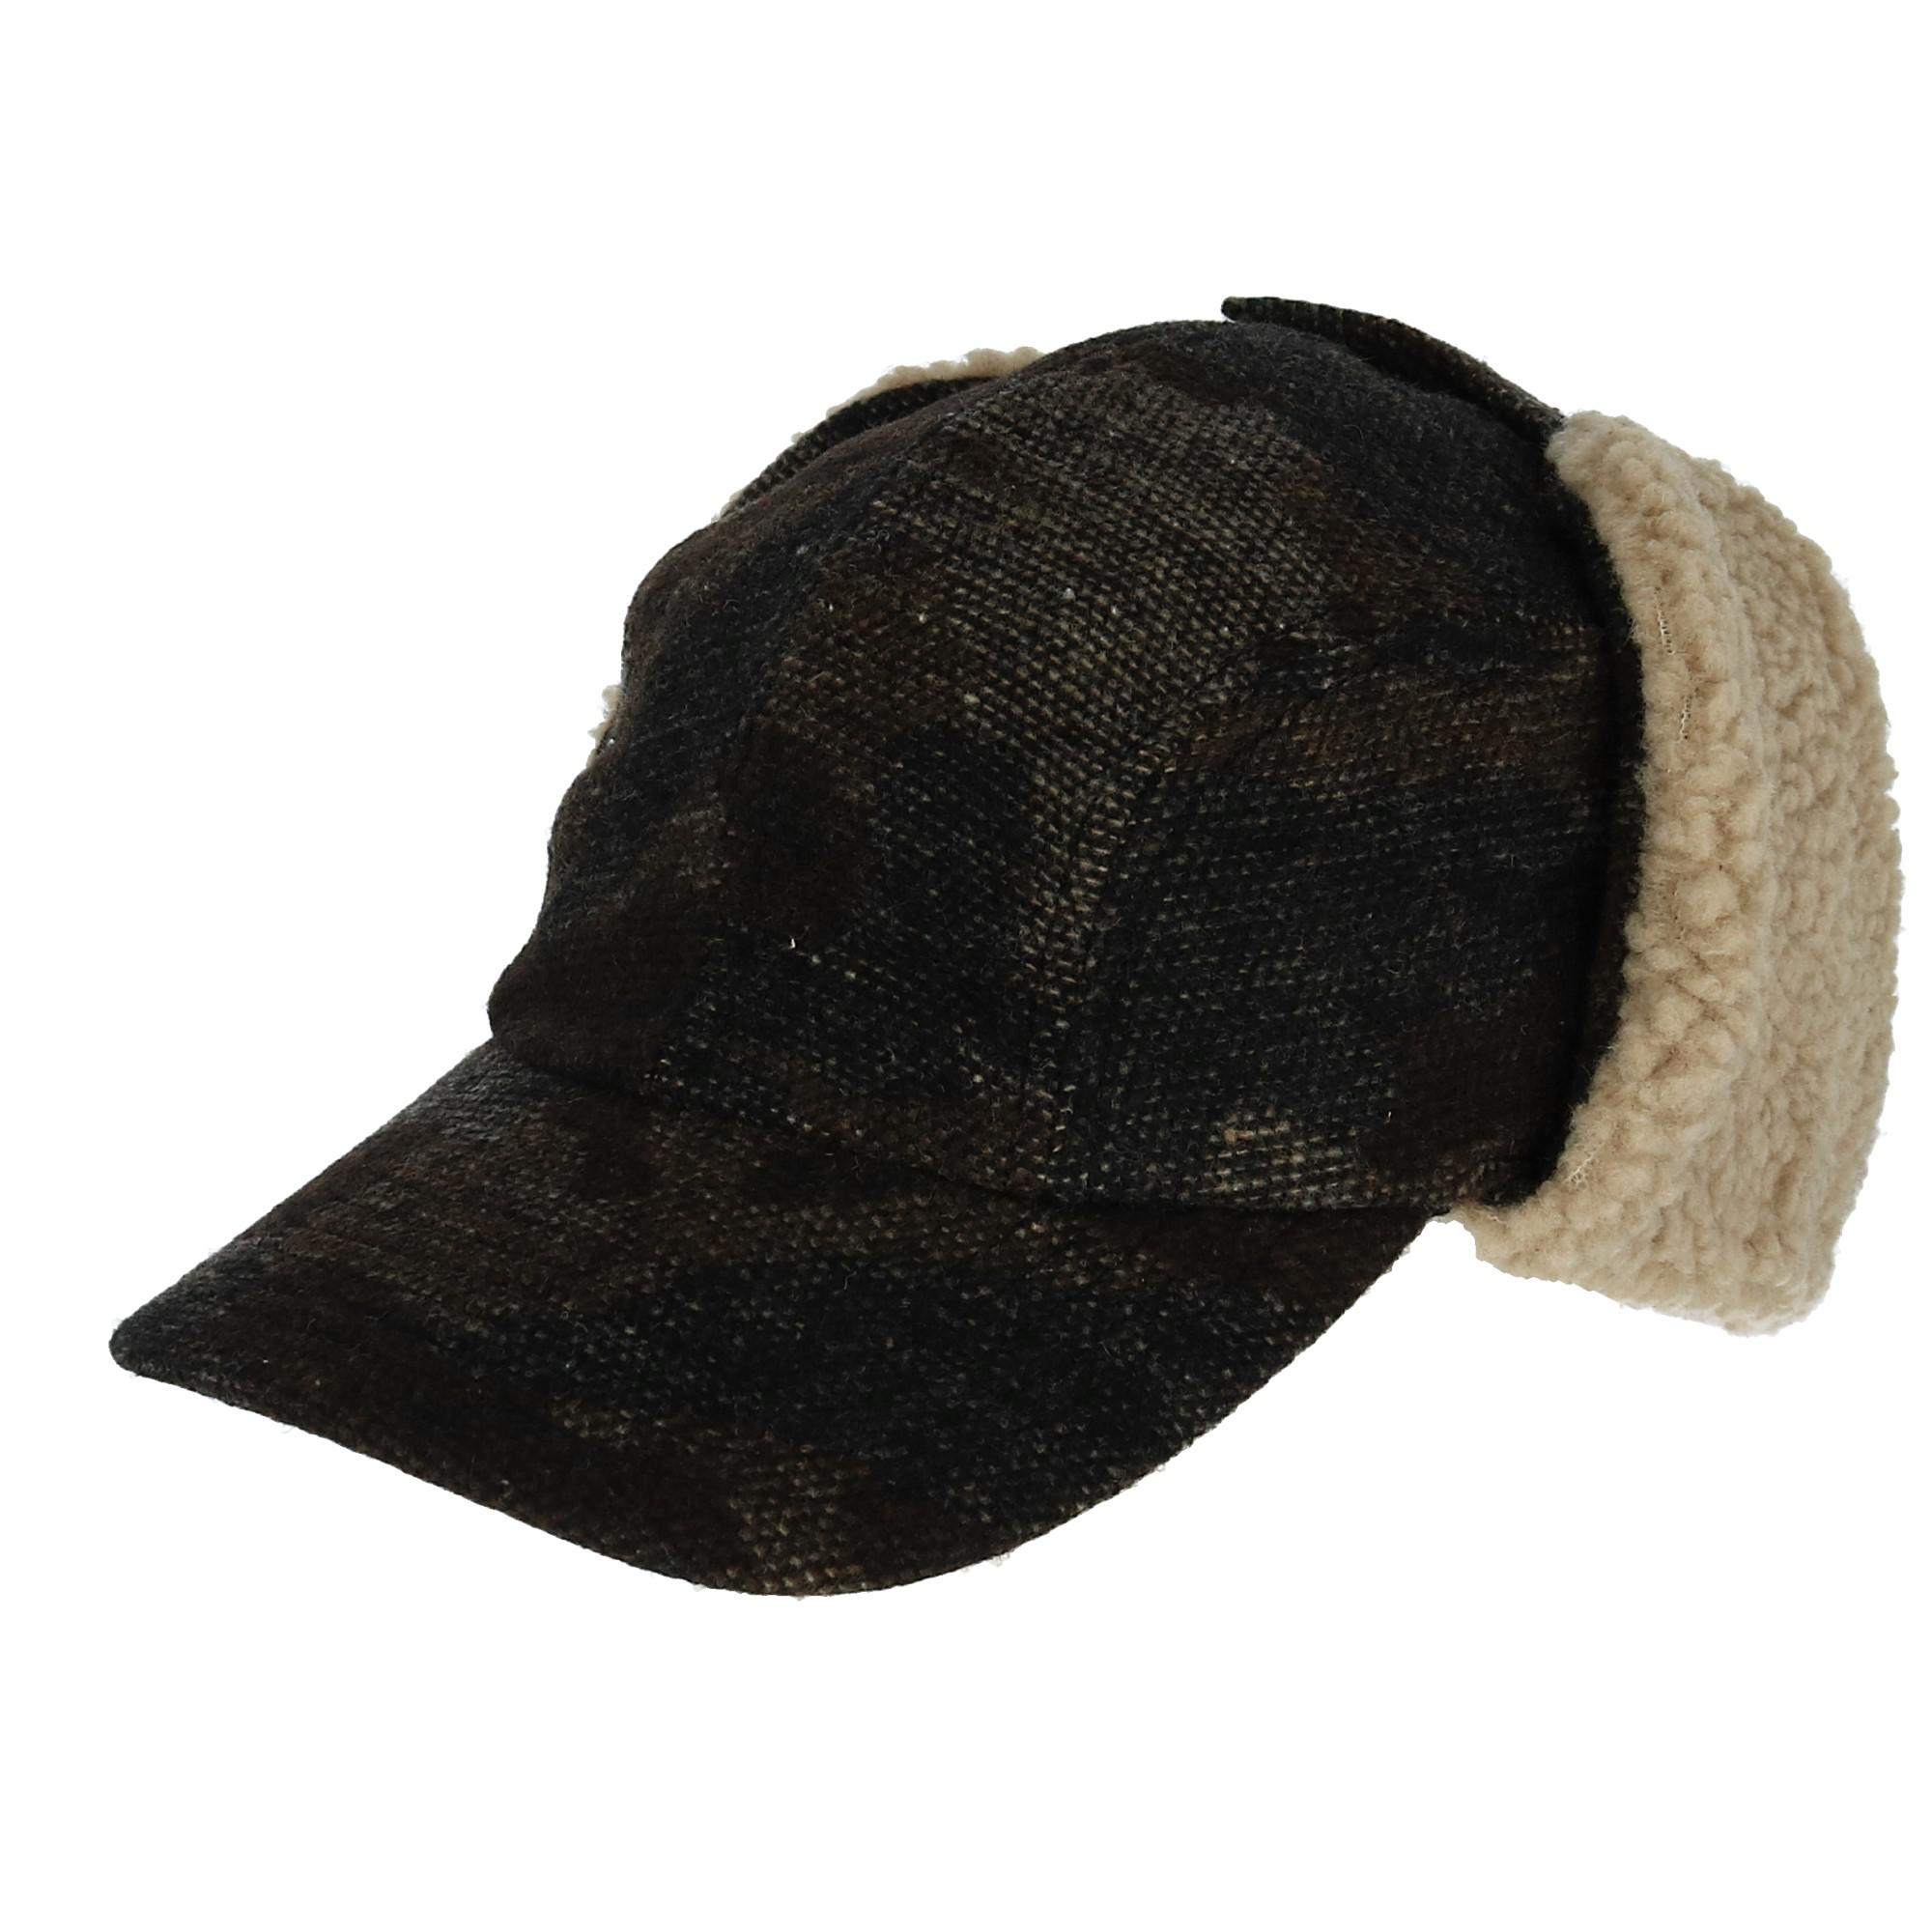 acd46dd19e8c0 Broner Men s Camo Outdoor Cap with Flannel Lining and Sherpa Ear Flaps  (BR-5413